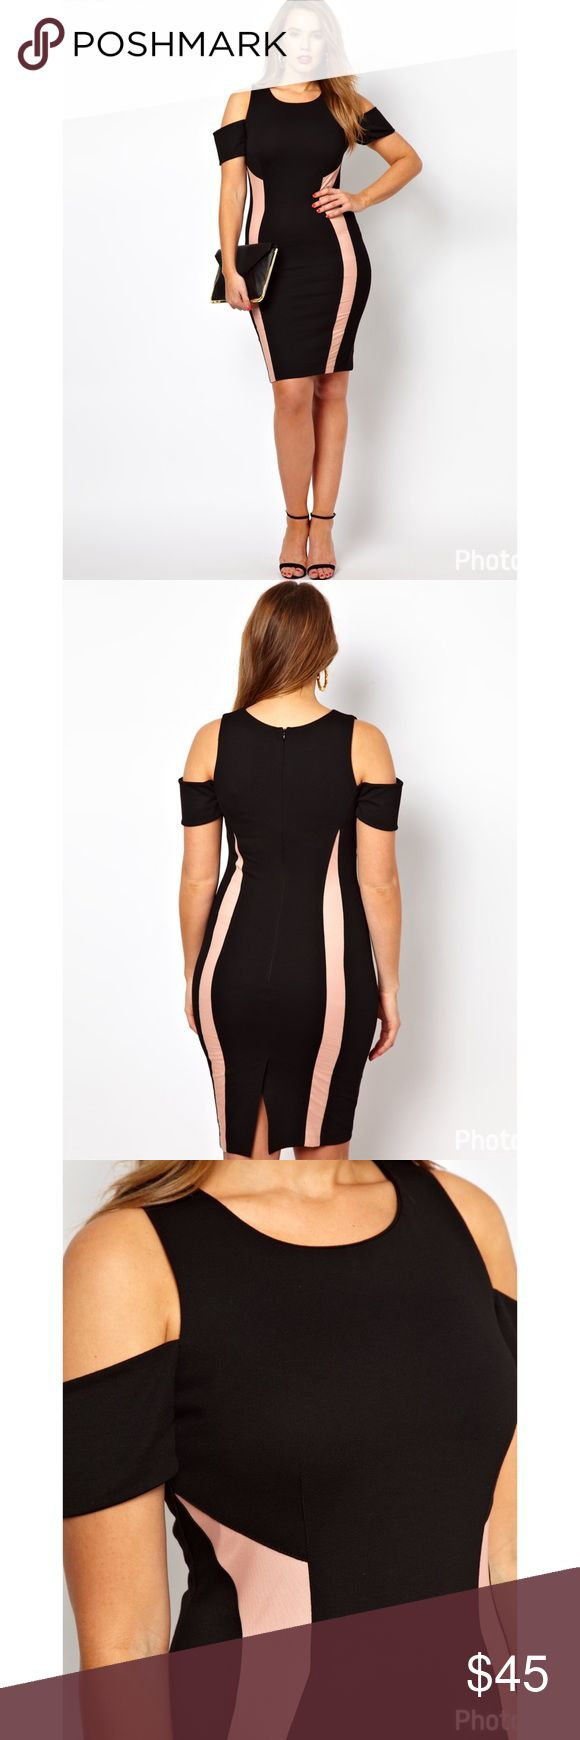 ASOS Curve bodycon dress with panels BNWT ASOS Curve bodycon dress with panels BNWT. Back zip. Back vent. Thick stretchy fabric. ASOS Curve Dresses